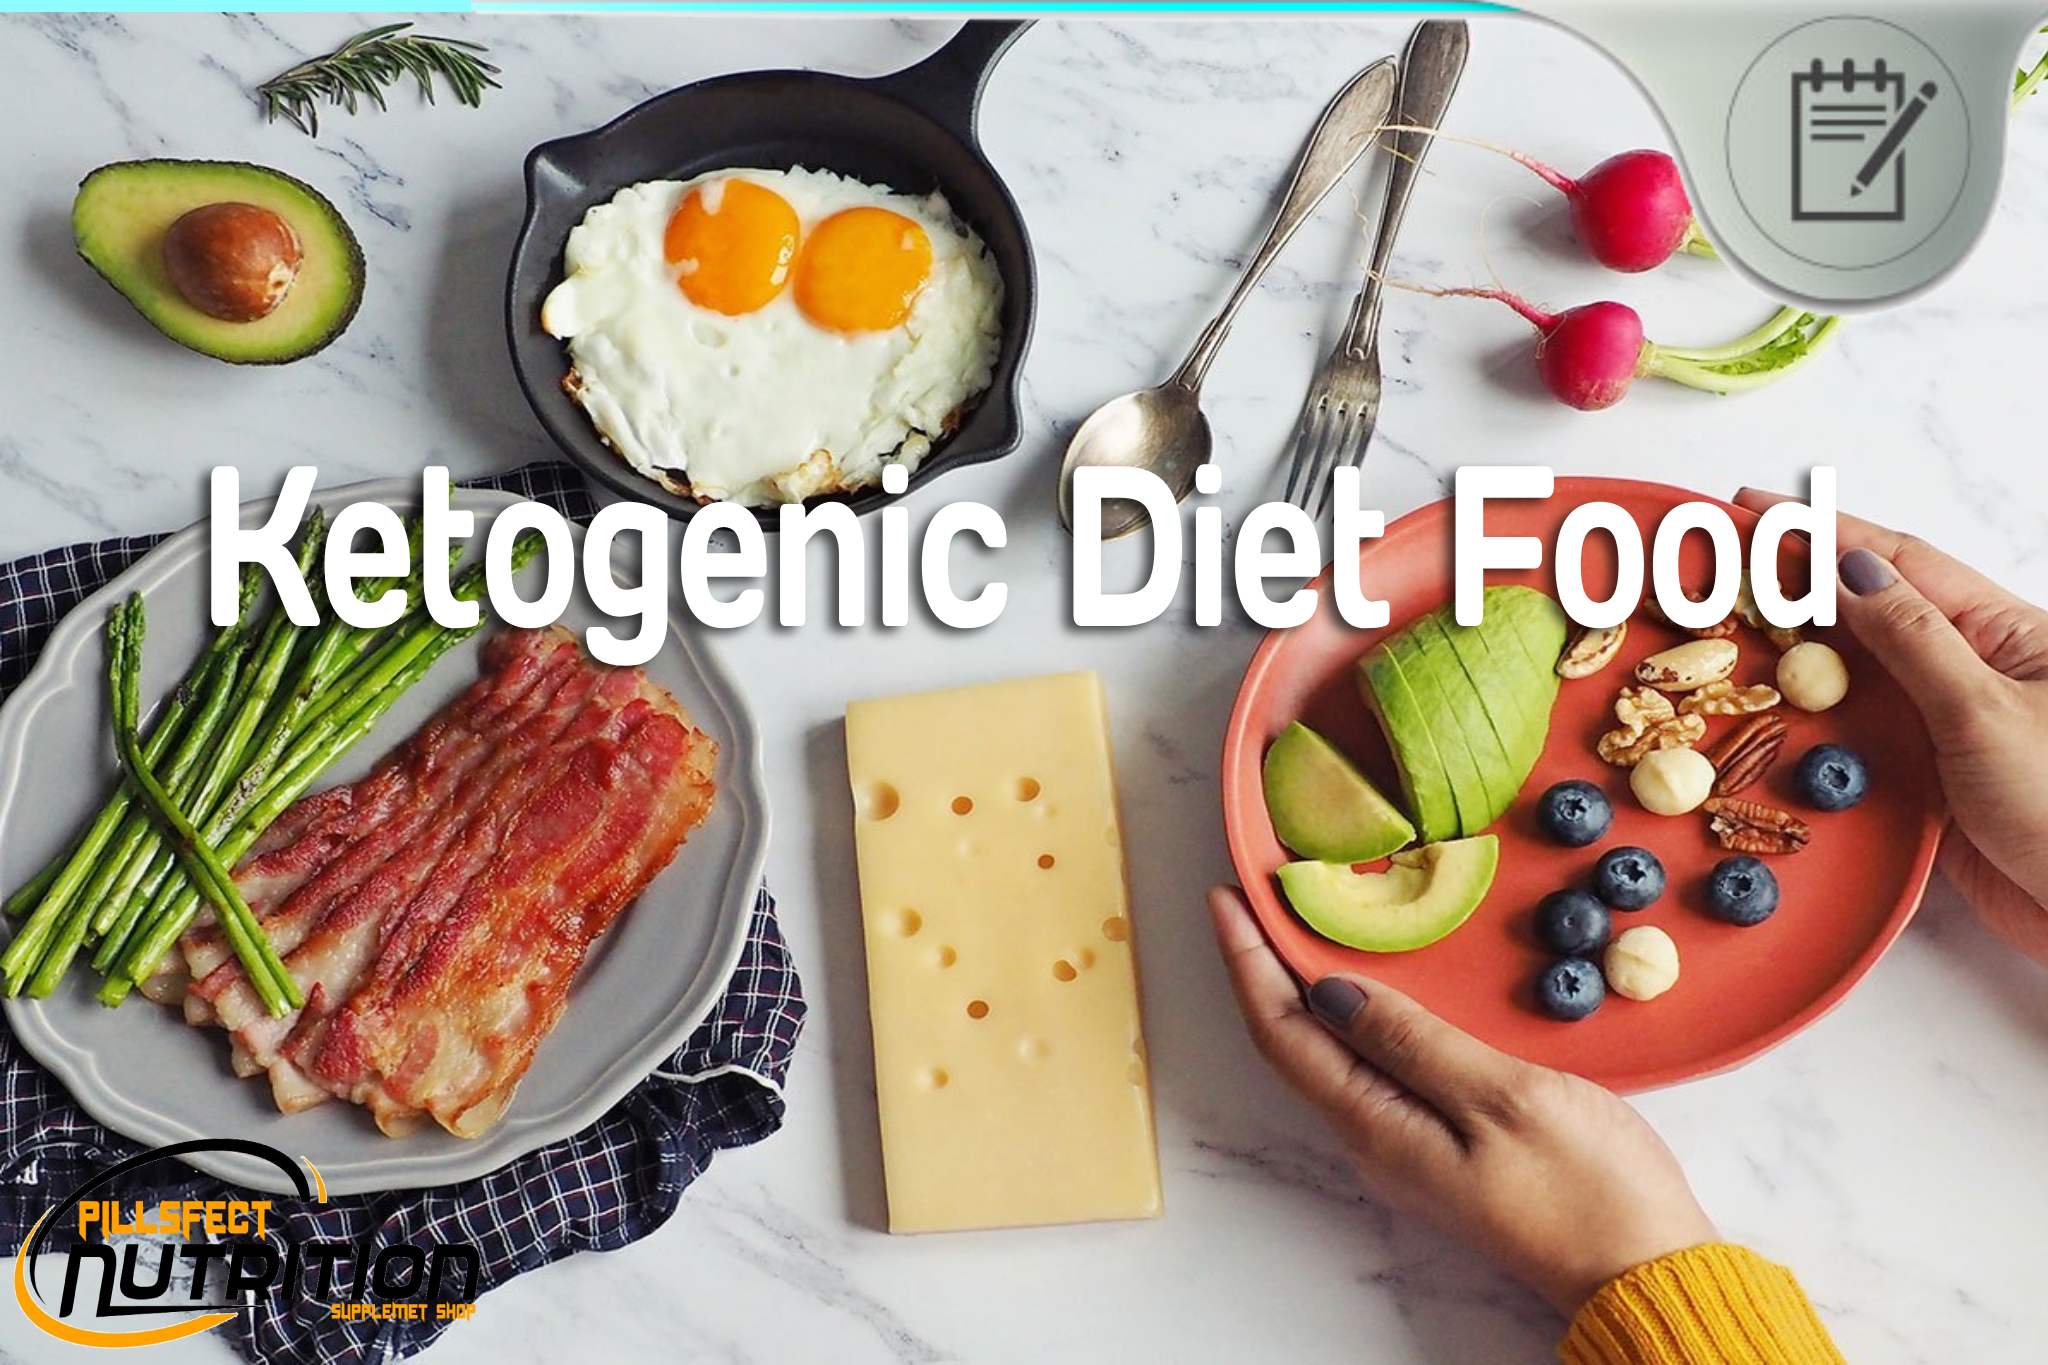 Ketogenic Diet Food - What is a Typical Daily Menu for Keto Diet?